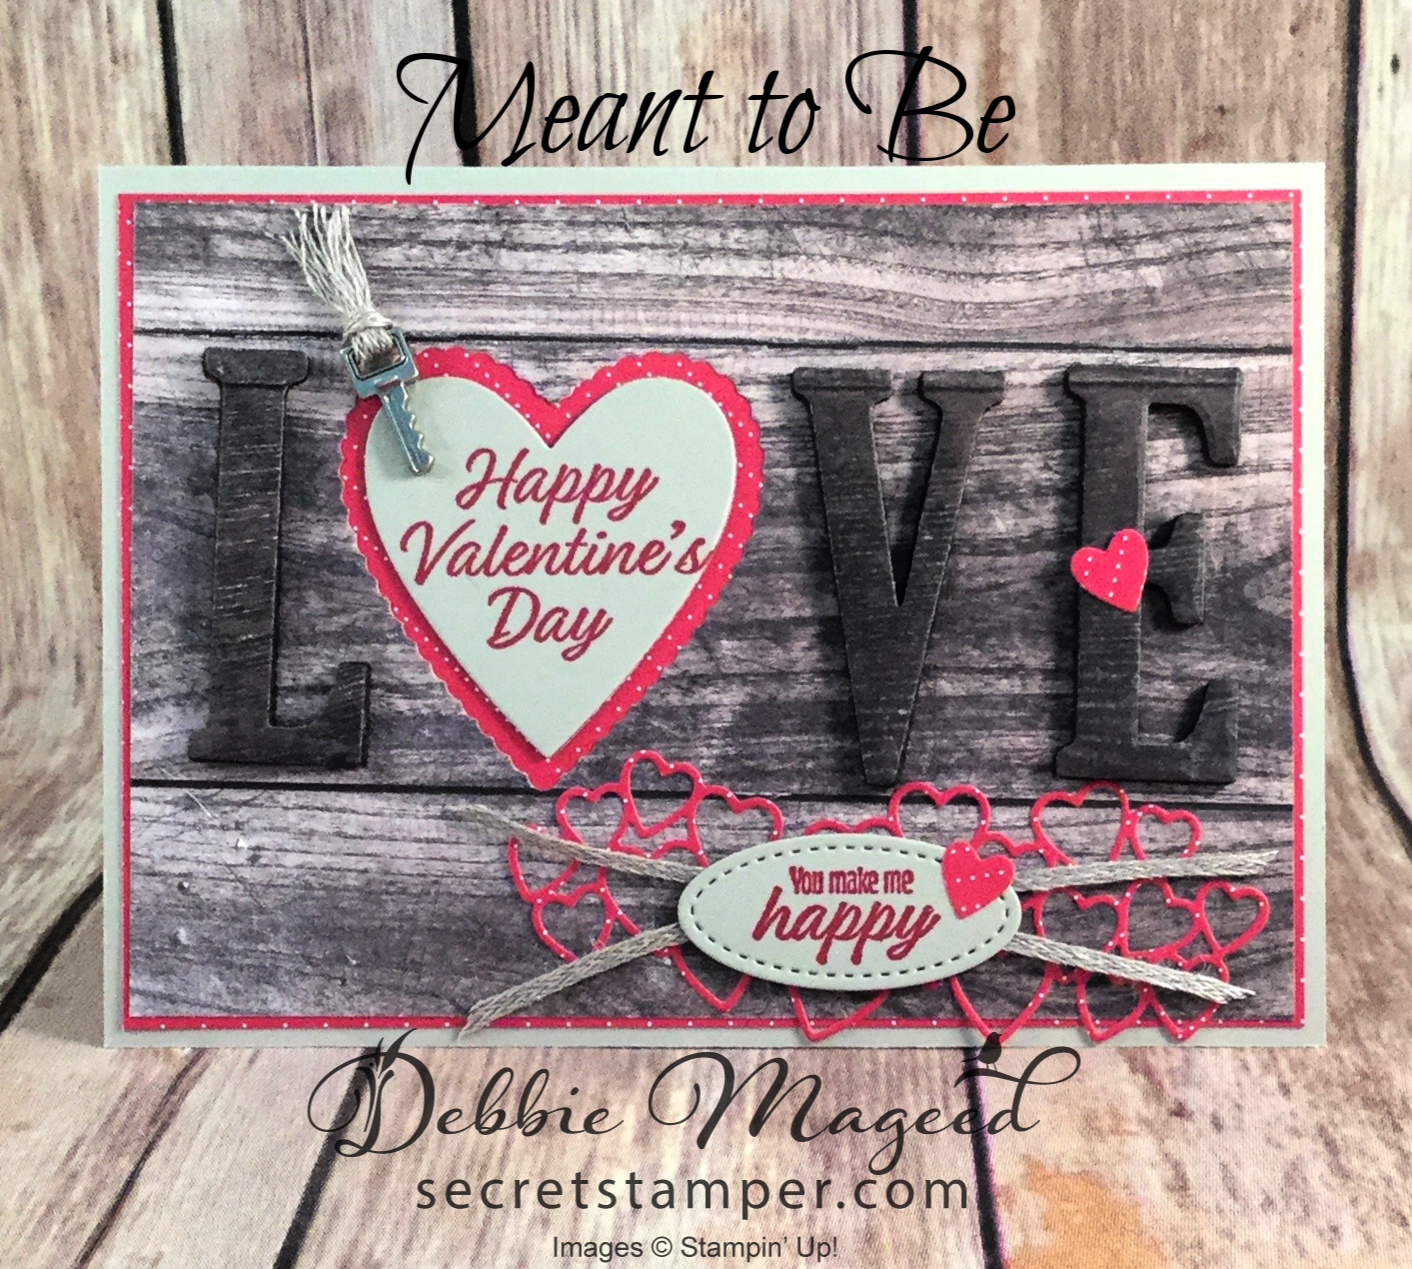 Learn how to make this Masculine Valentines Card Featuring Meant to Be Stamp Set, #DebbieMageed #Meanttobe #Valentines #Masculine #OccasionsCatalog